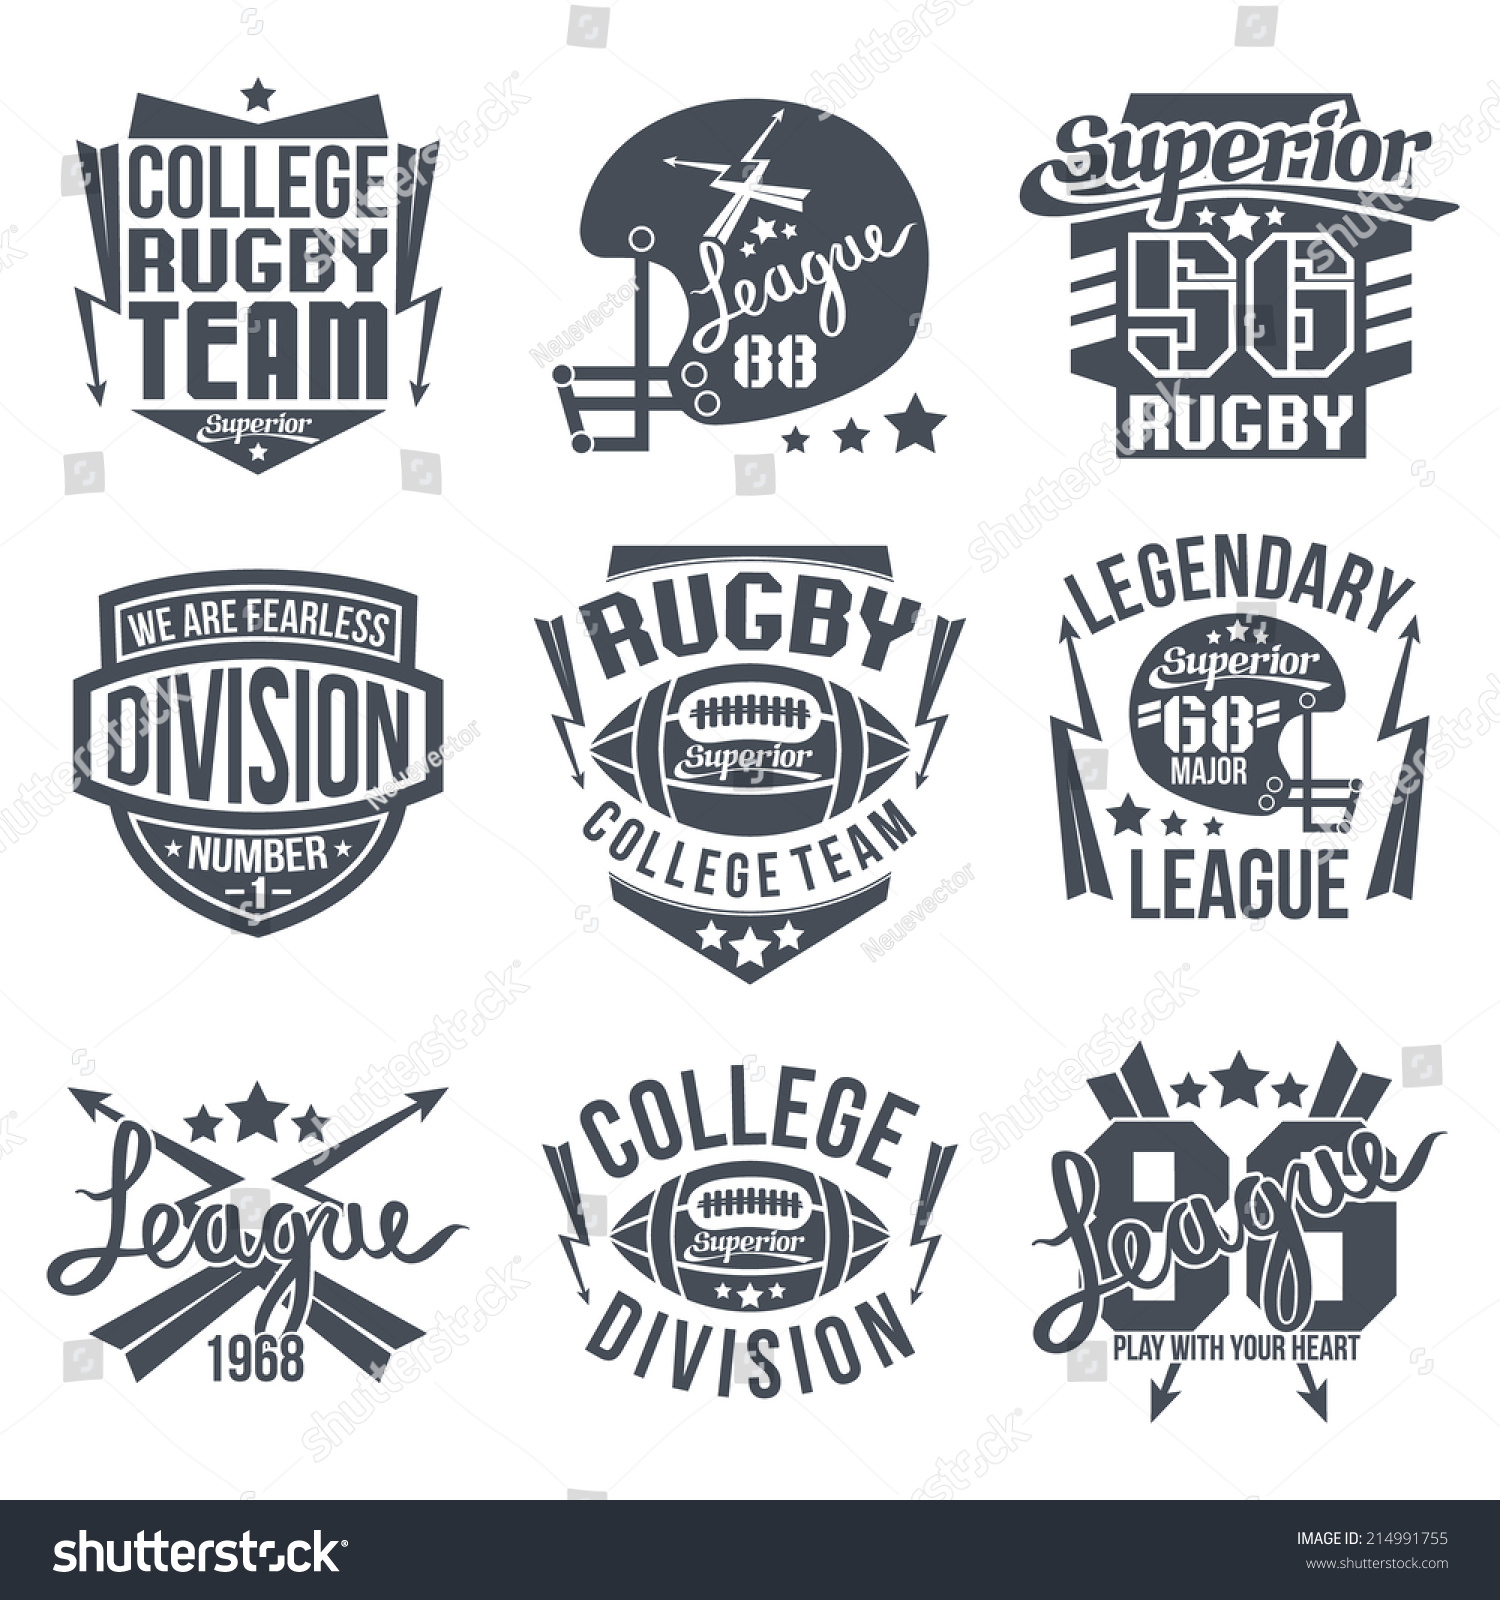 Shirt design graphics - College Rugby Team Emblem Graphic Design For T Shirt Black Print On White Background